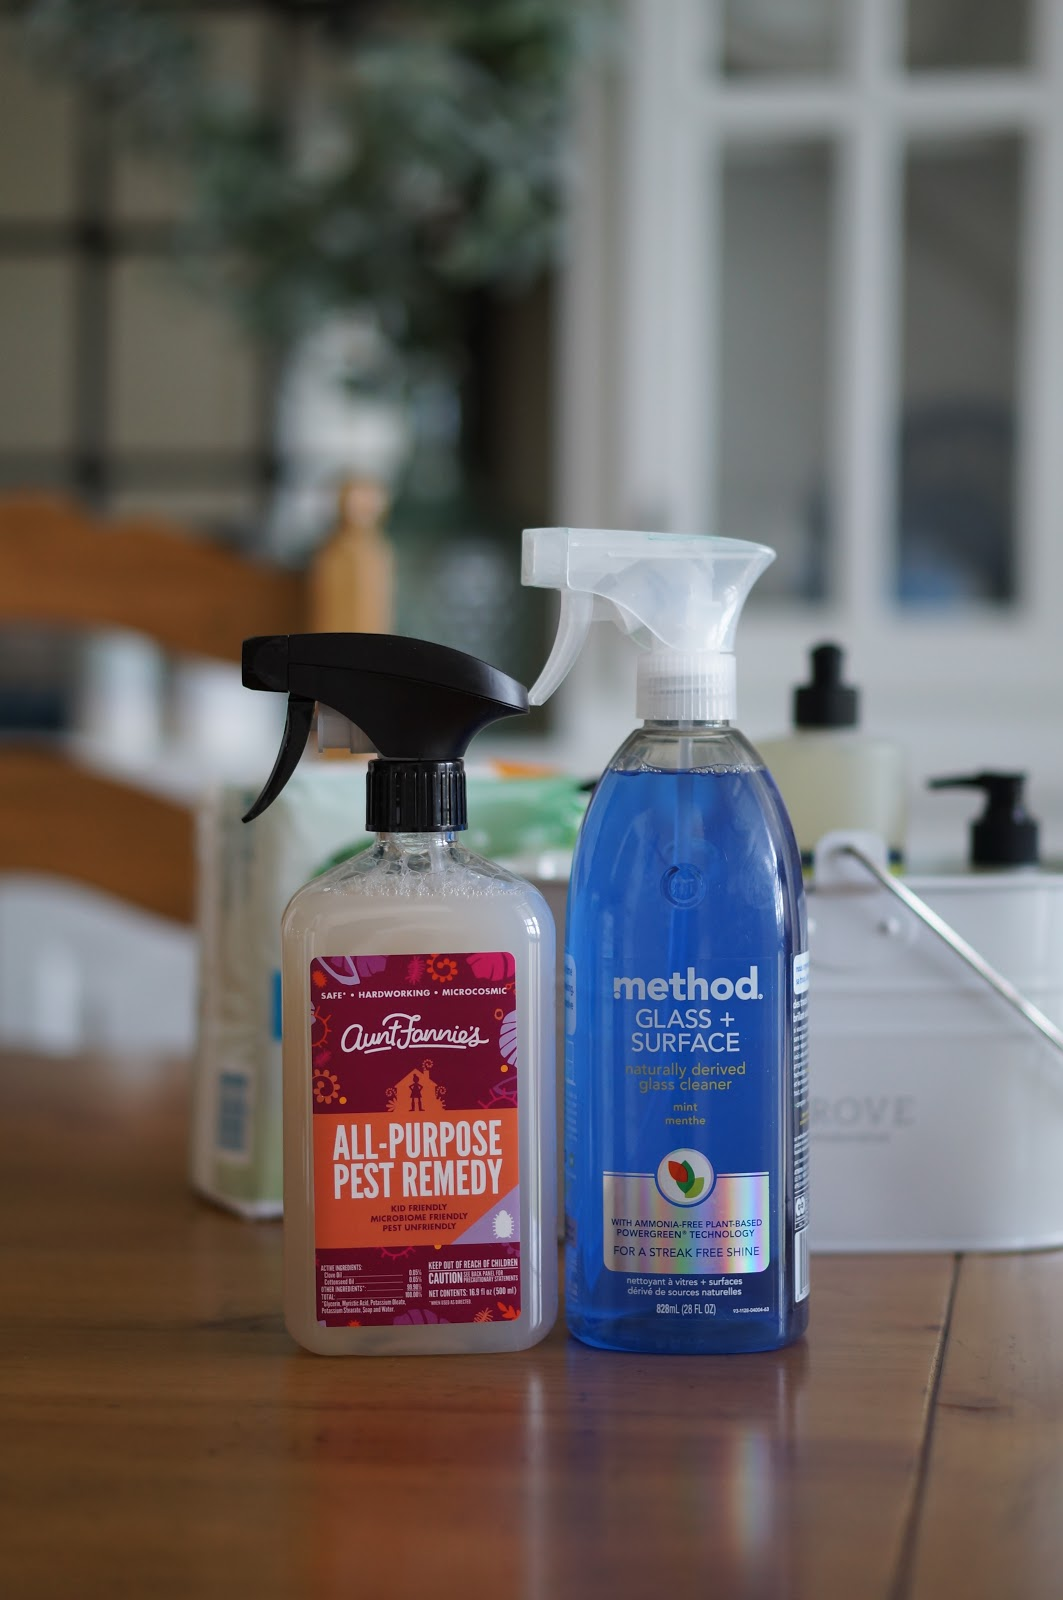 Popular North Carolina style blogger Rebecca Lately shares her July Grove Collaborative order, along with an offer for a free cleaning caddy and products!